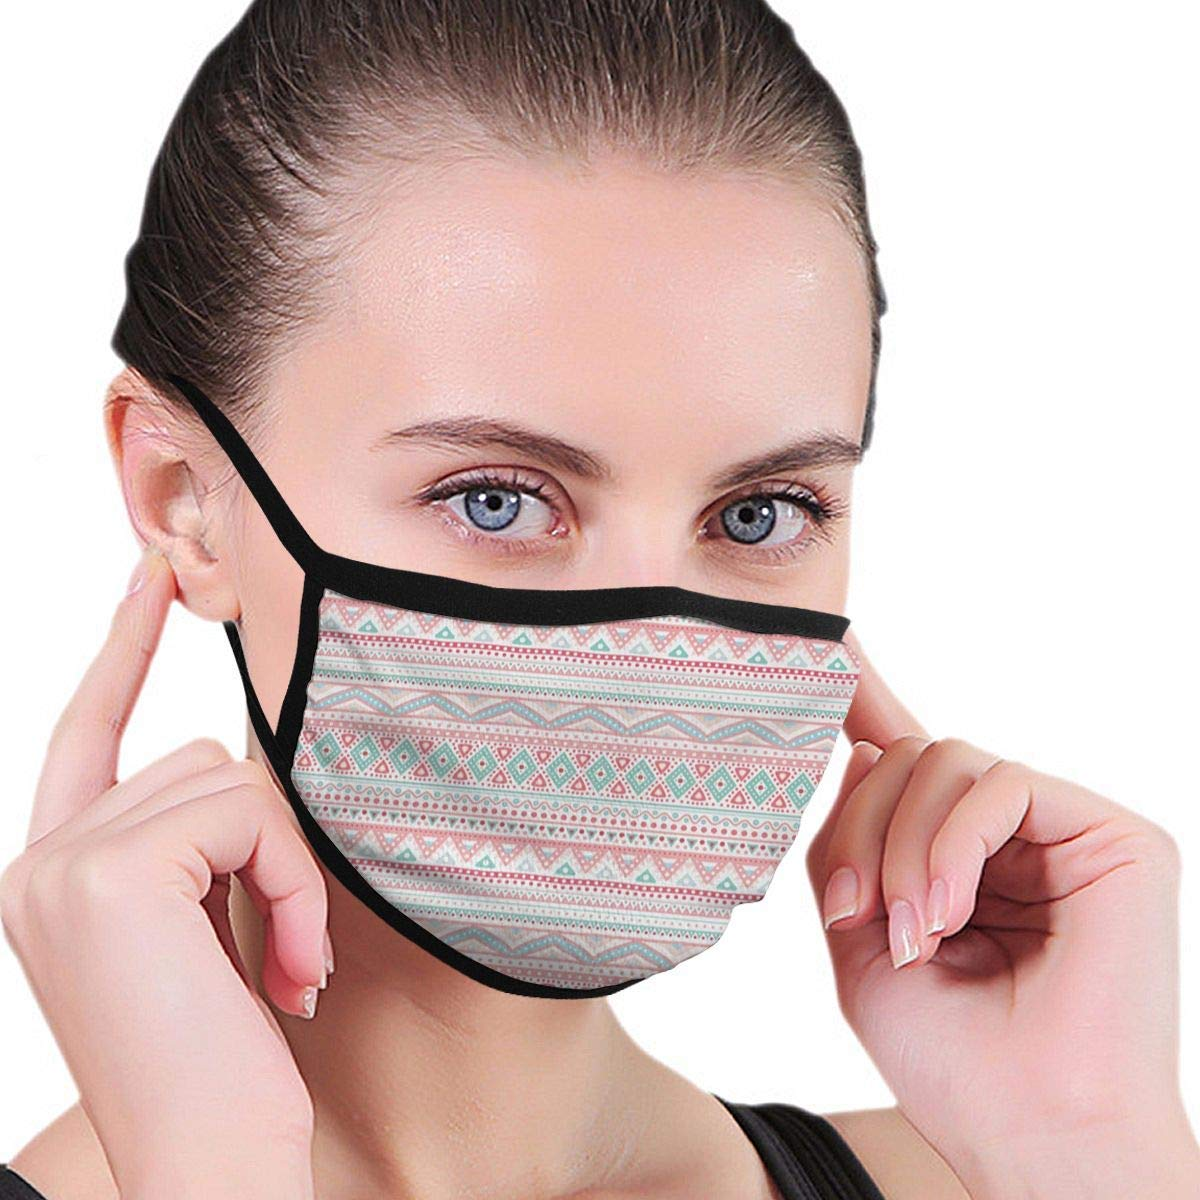 Bdwuhs Mascarillas Bucales and-Drawn Tribal Aztec Symbols In Pastel Colors White Background Ethnic Illustration Unisex Anti-Dust Face Mouth Mask For Teens Men Women, Windproof Motorcycle Face Emot